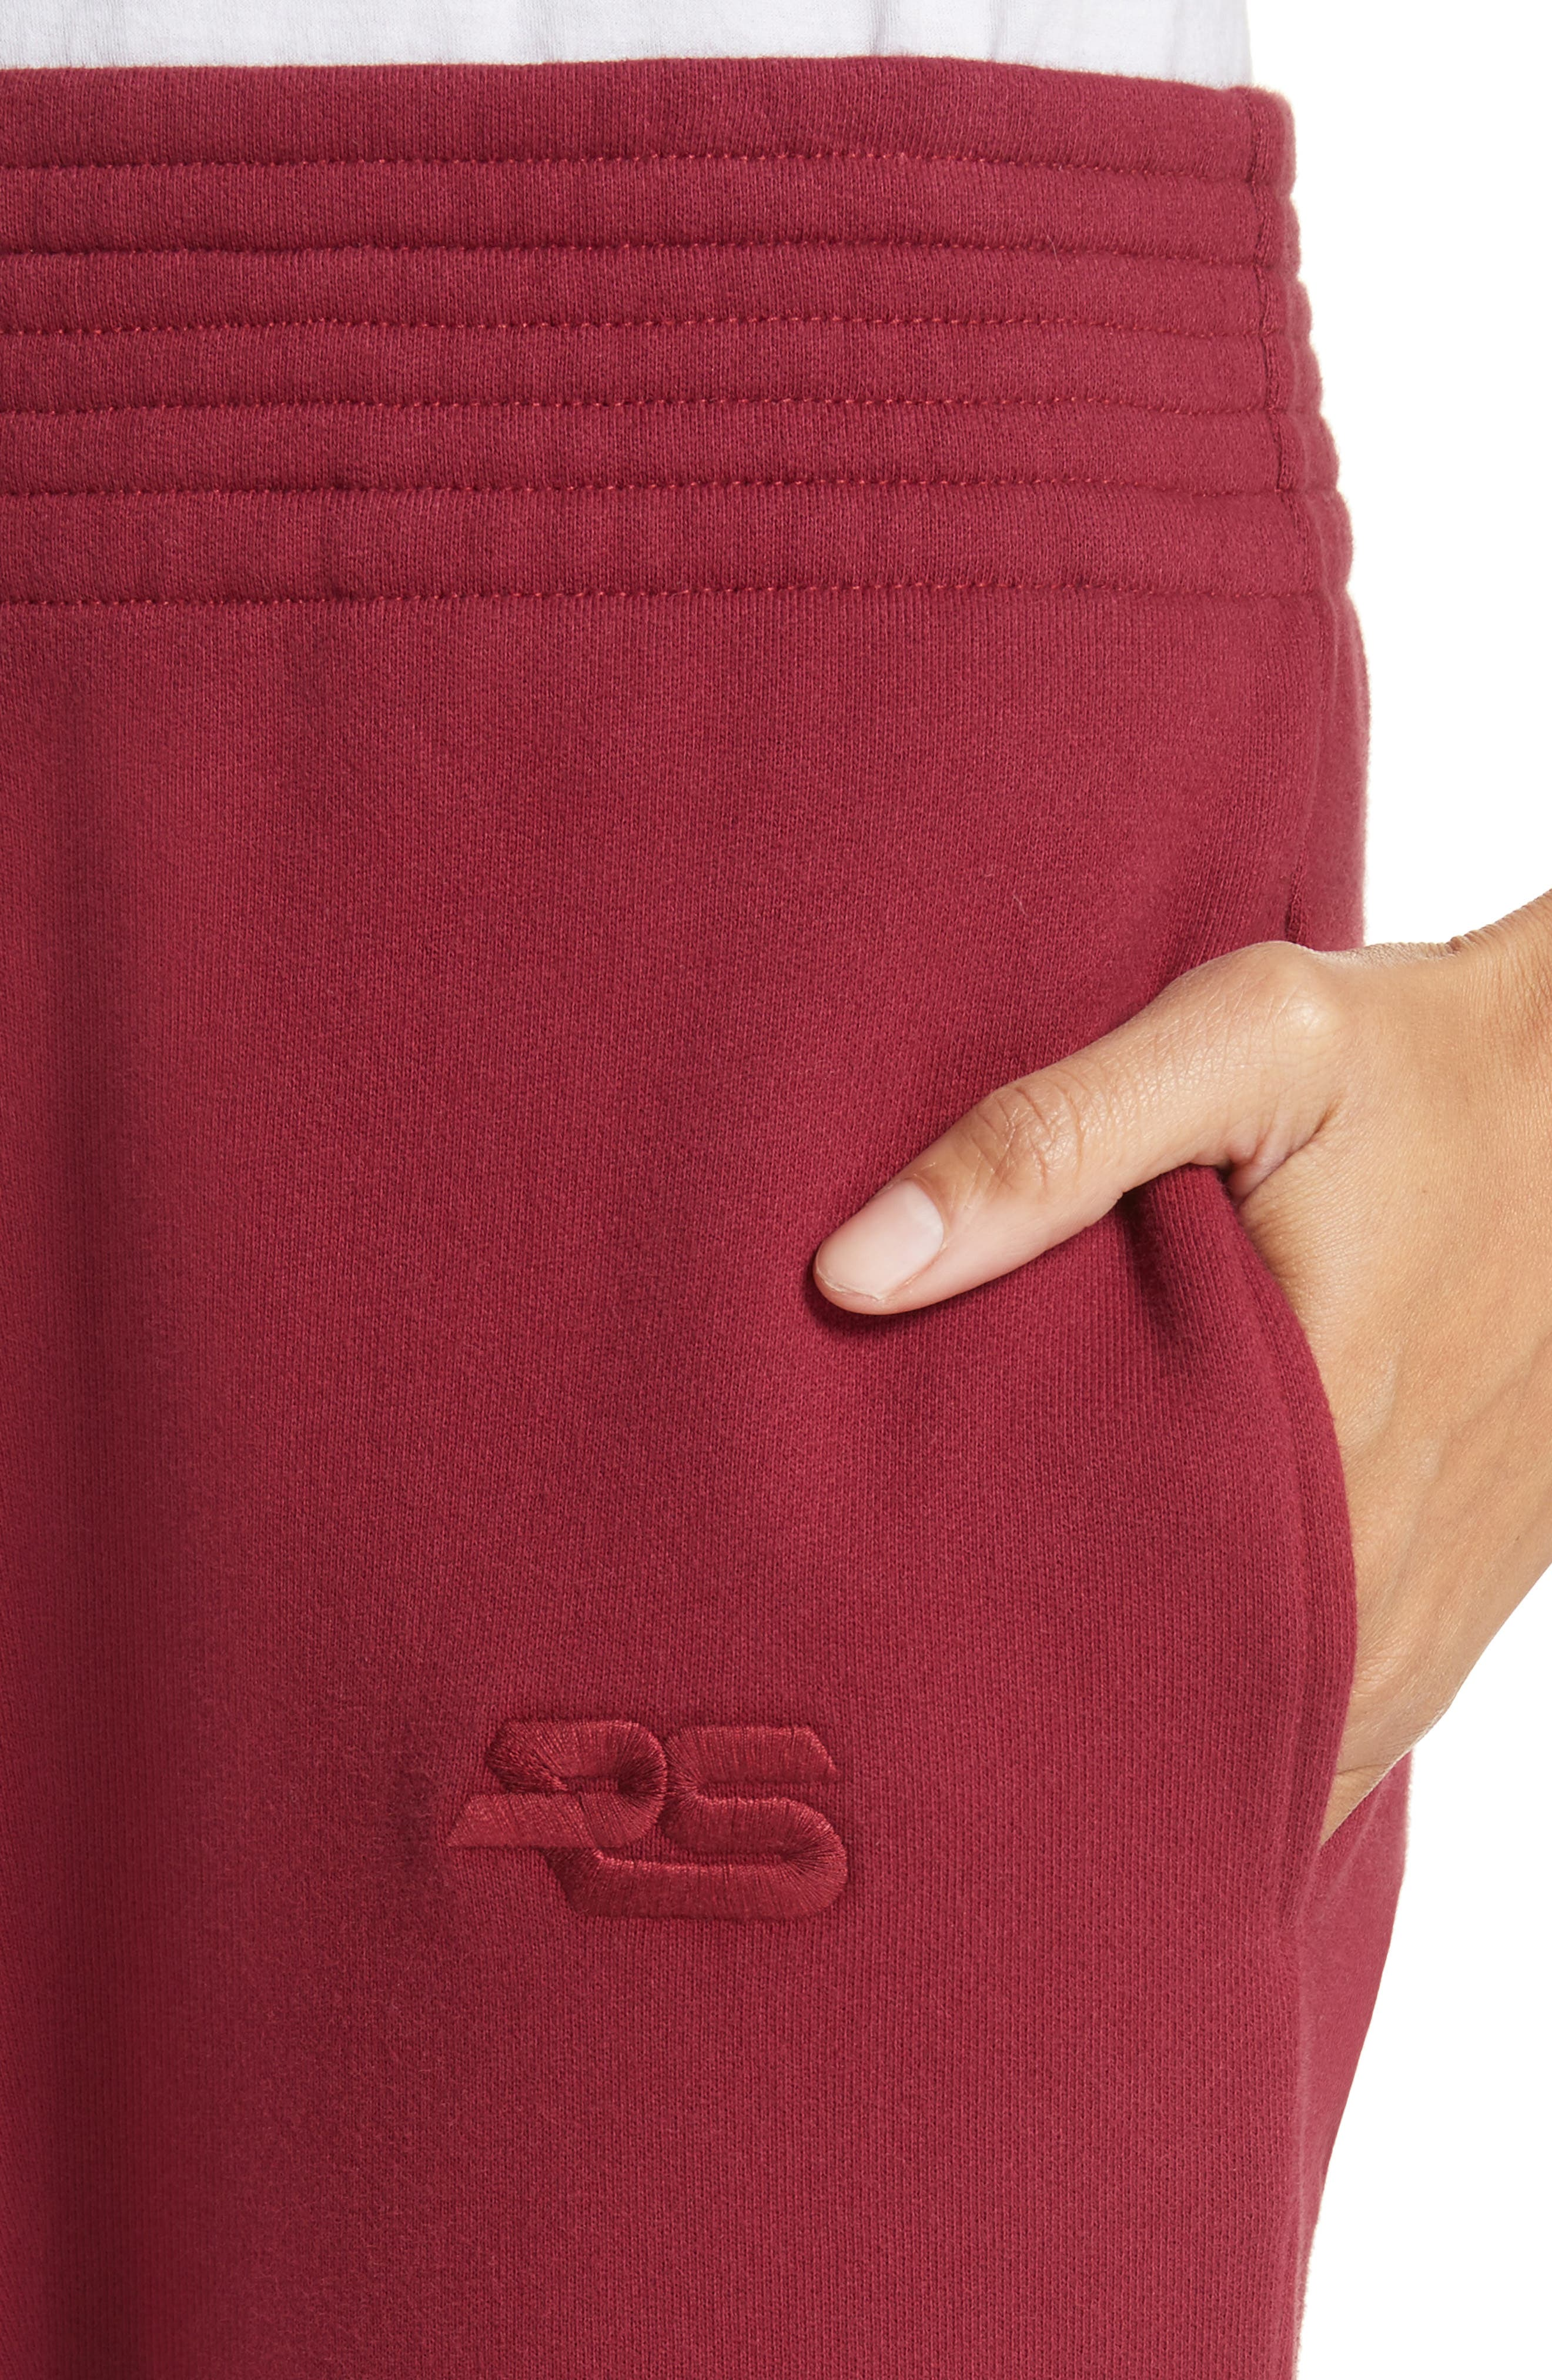 PSWL Sweatpants,                             Alternate thumbnail 4, color,                             Burgundy